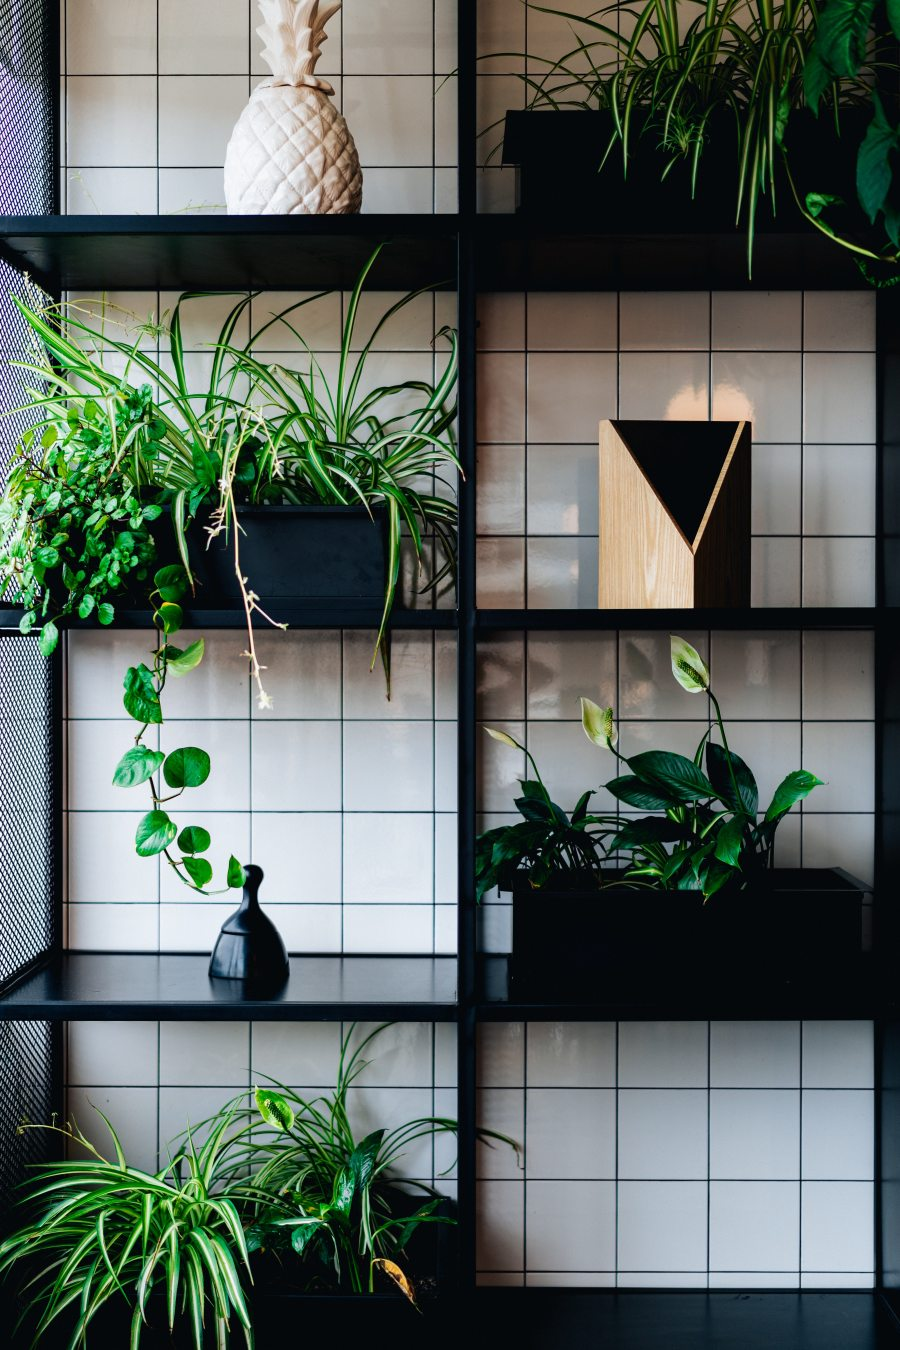 decors-plants-shelves-1701535